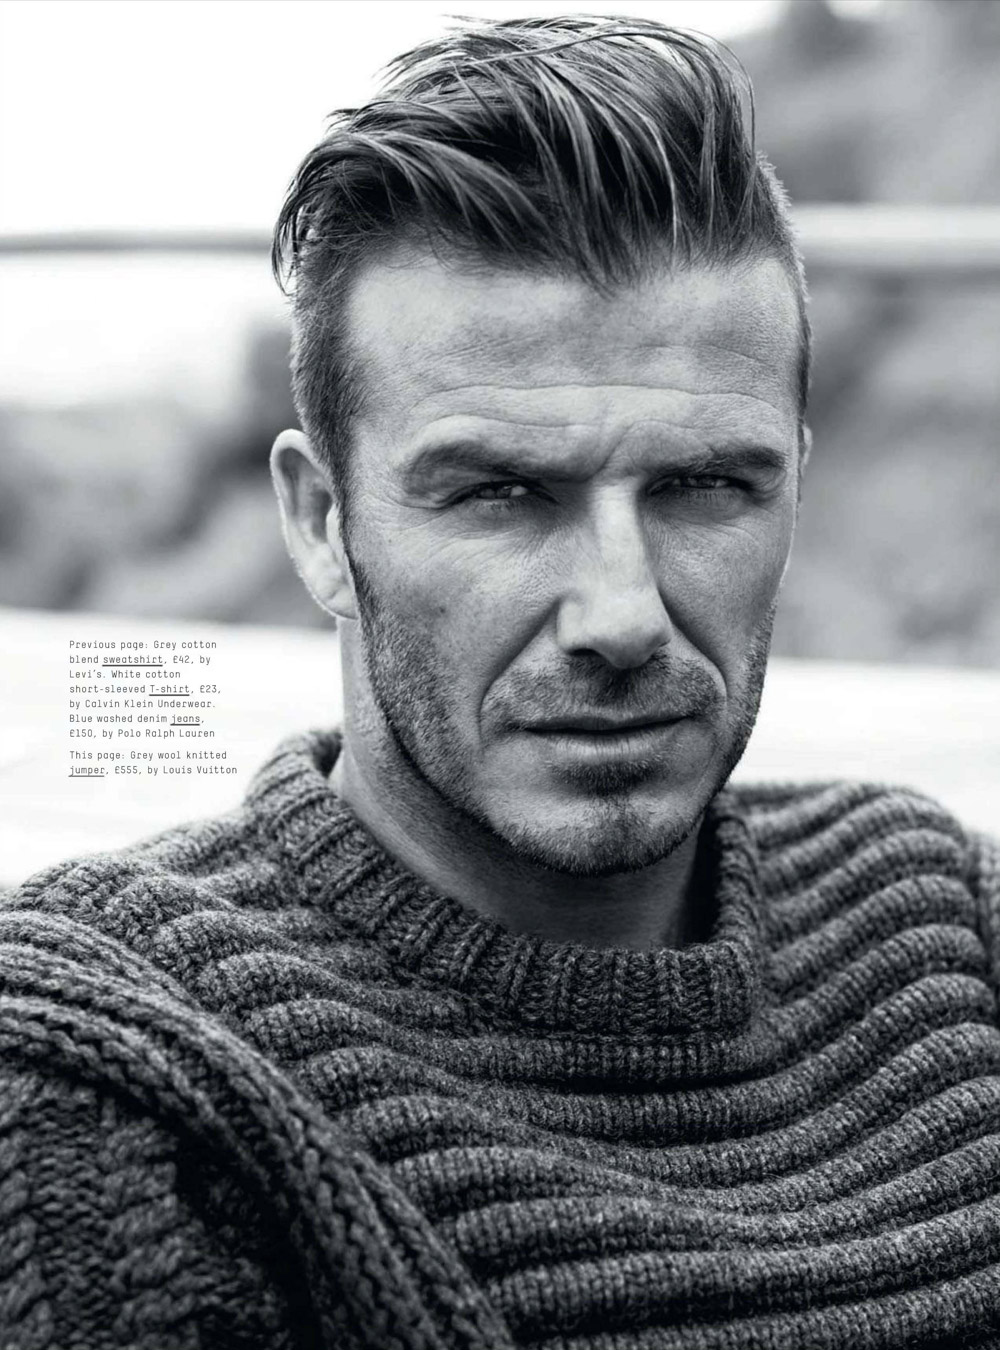 David beckham for esquire uk september 2012 - David beckham ...